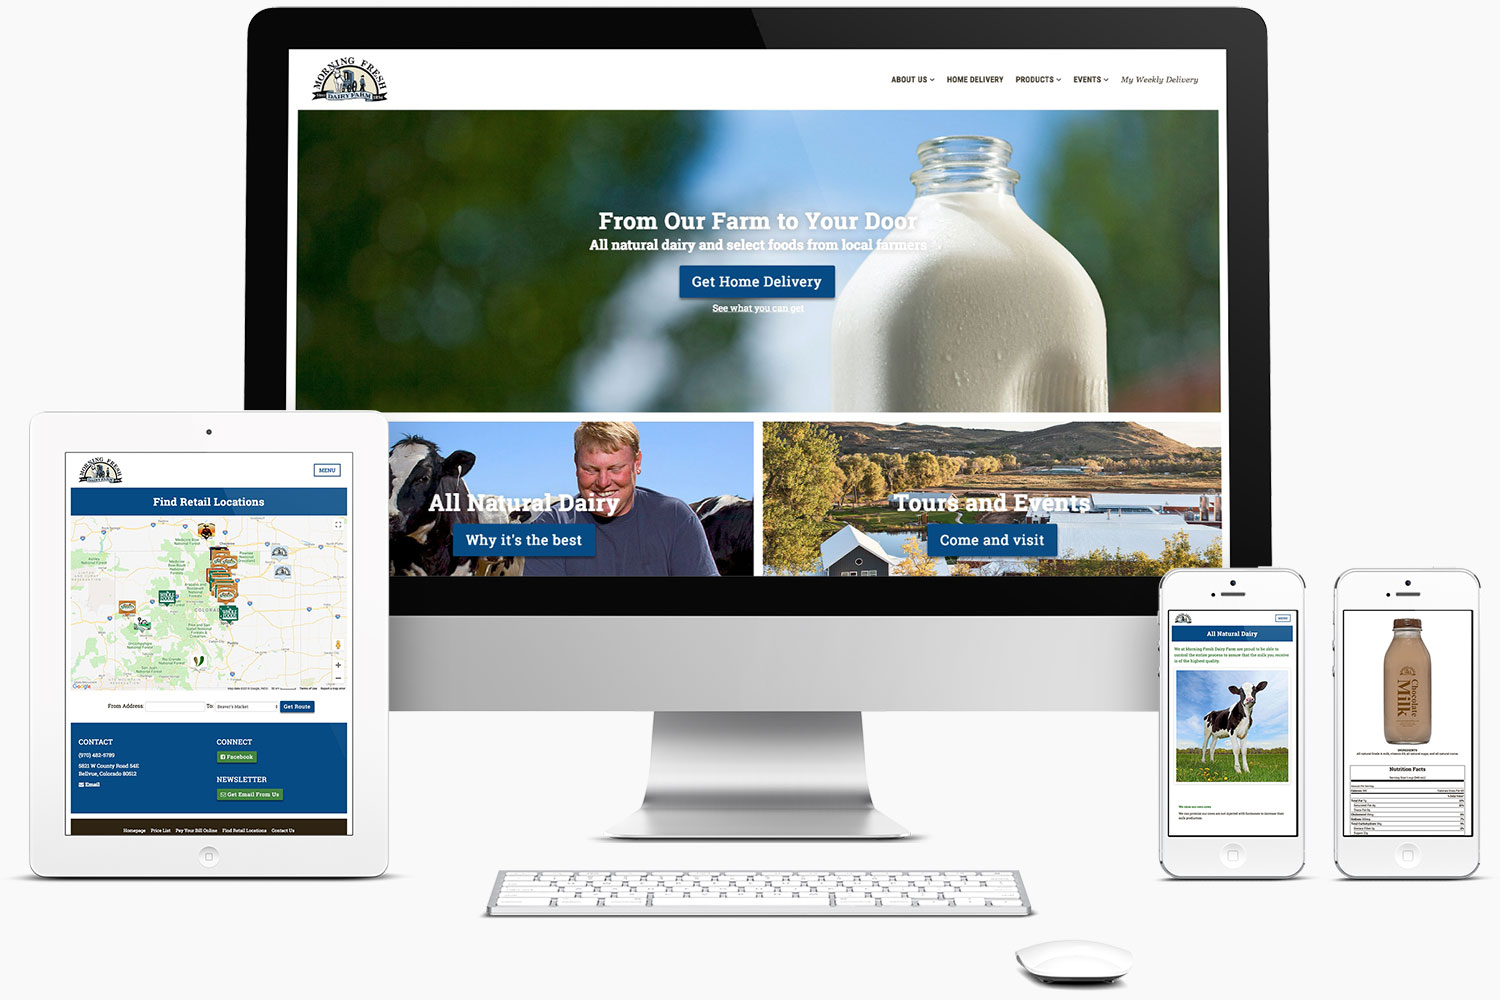 Web Design - Morning Fresh Dairy